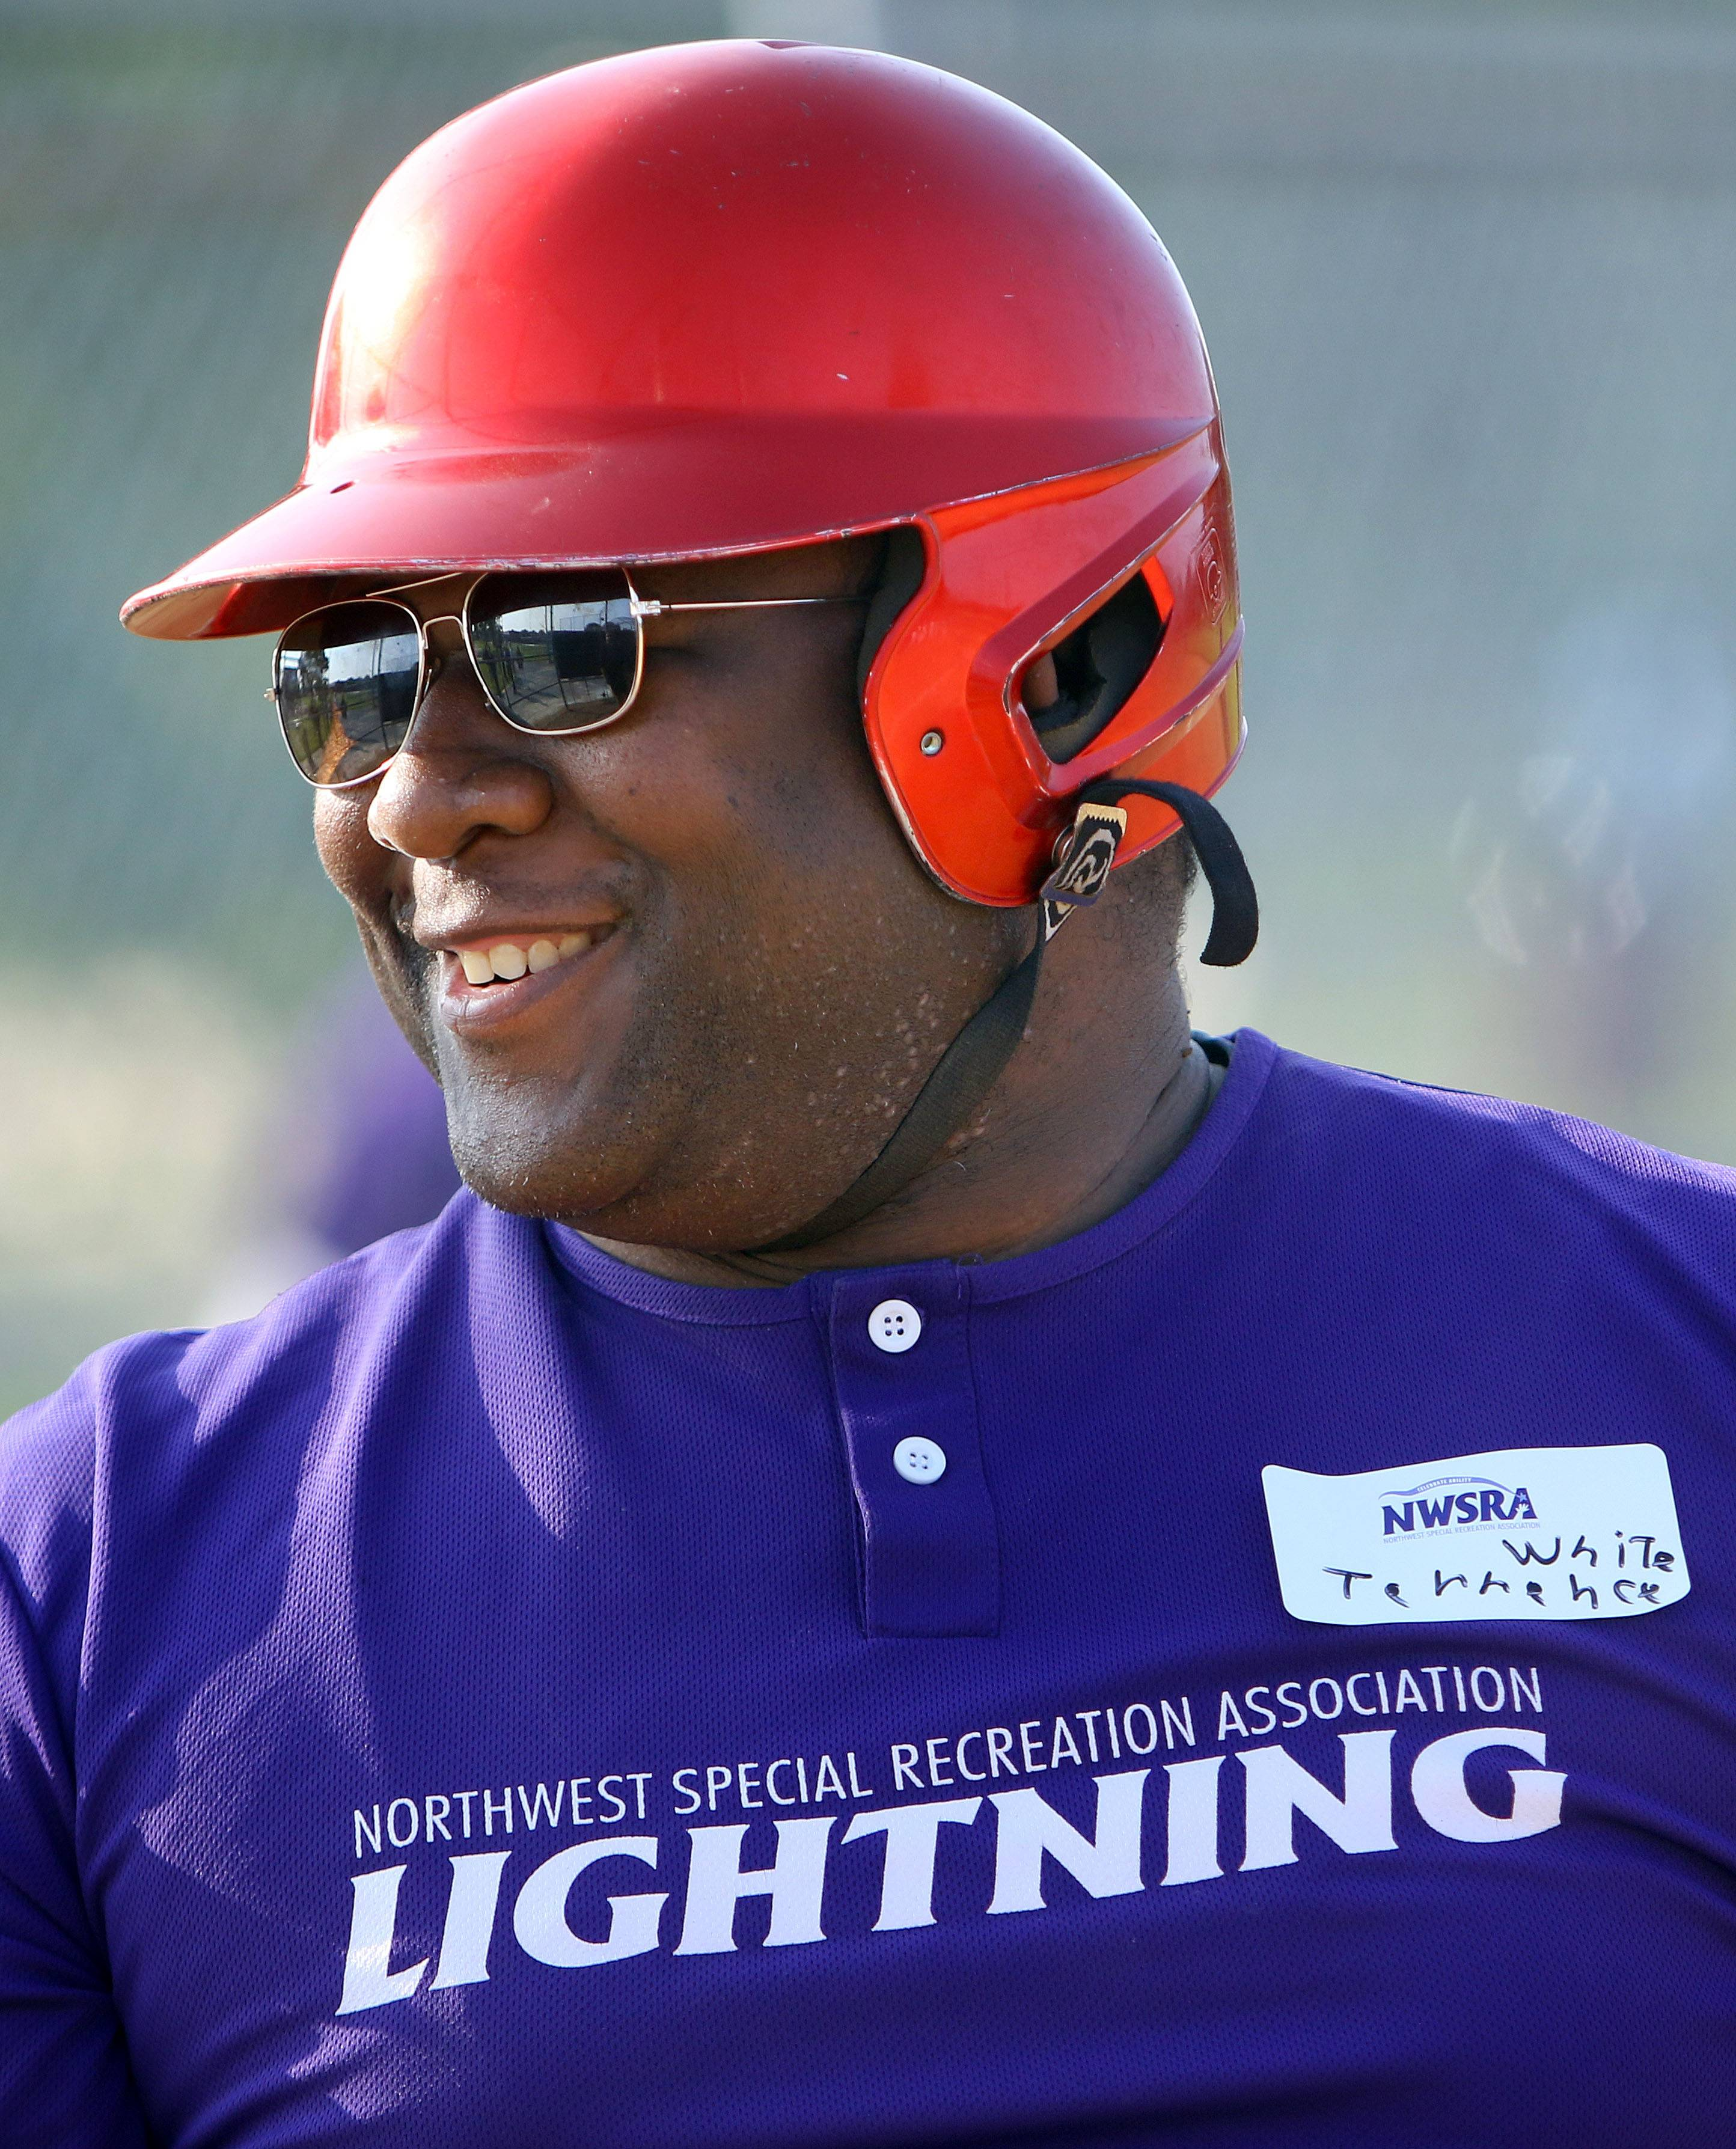 Terrence White is all smiles as 25 athletes from Northwest Special Recreation Association were paired up with high school players from the American Legion Mount Prospect Bulldogs Post 525 baseball team Tuesday during the 2015 Summer Classic at Friendship Park Conservatory in Des Plaines.